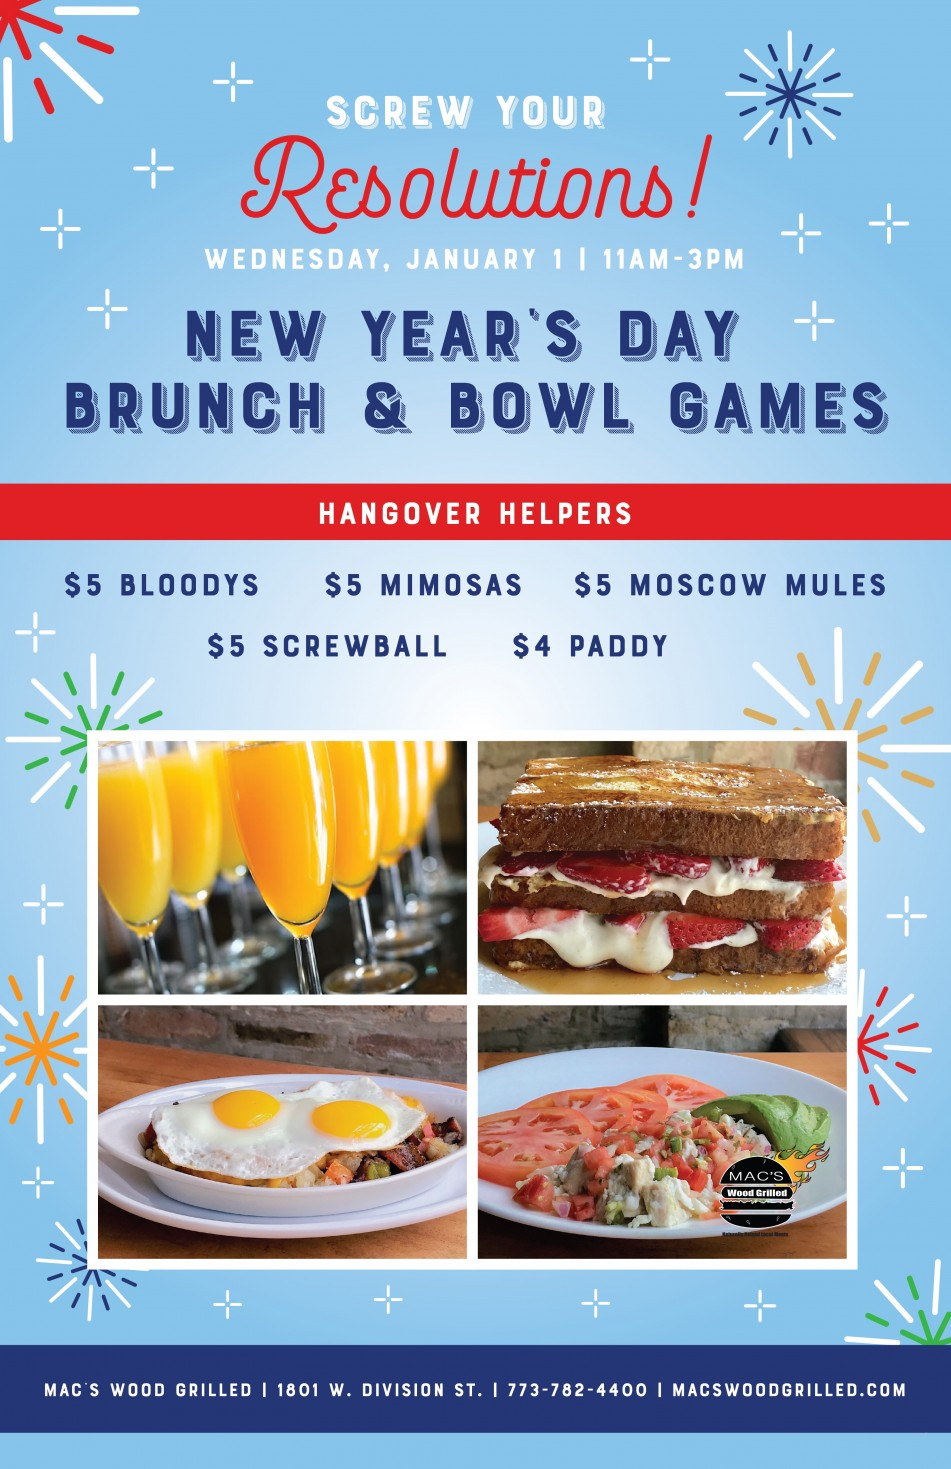 New Year's Day Brunch & Bowl Games at Mac's Wood Grilled